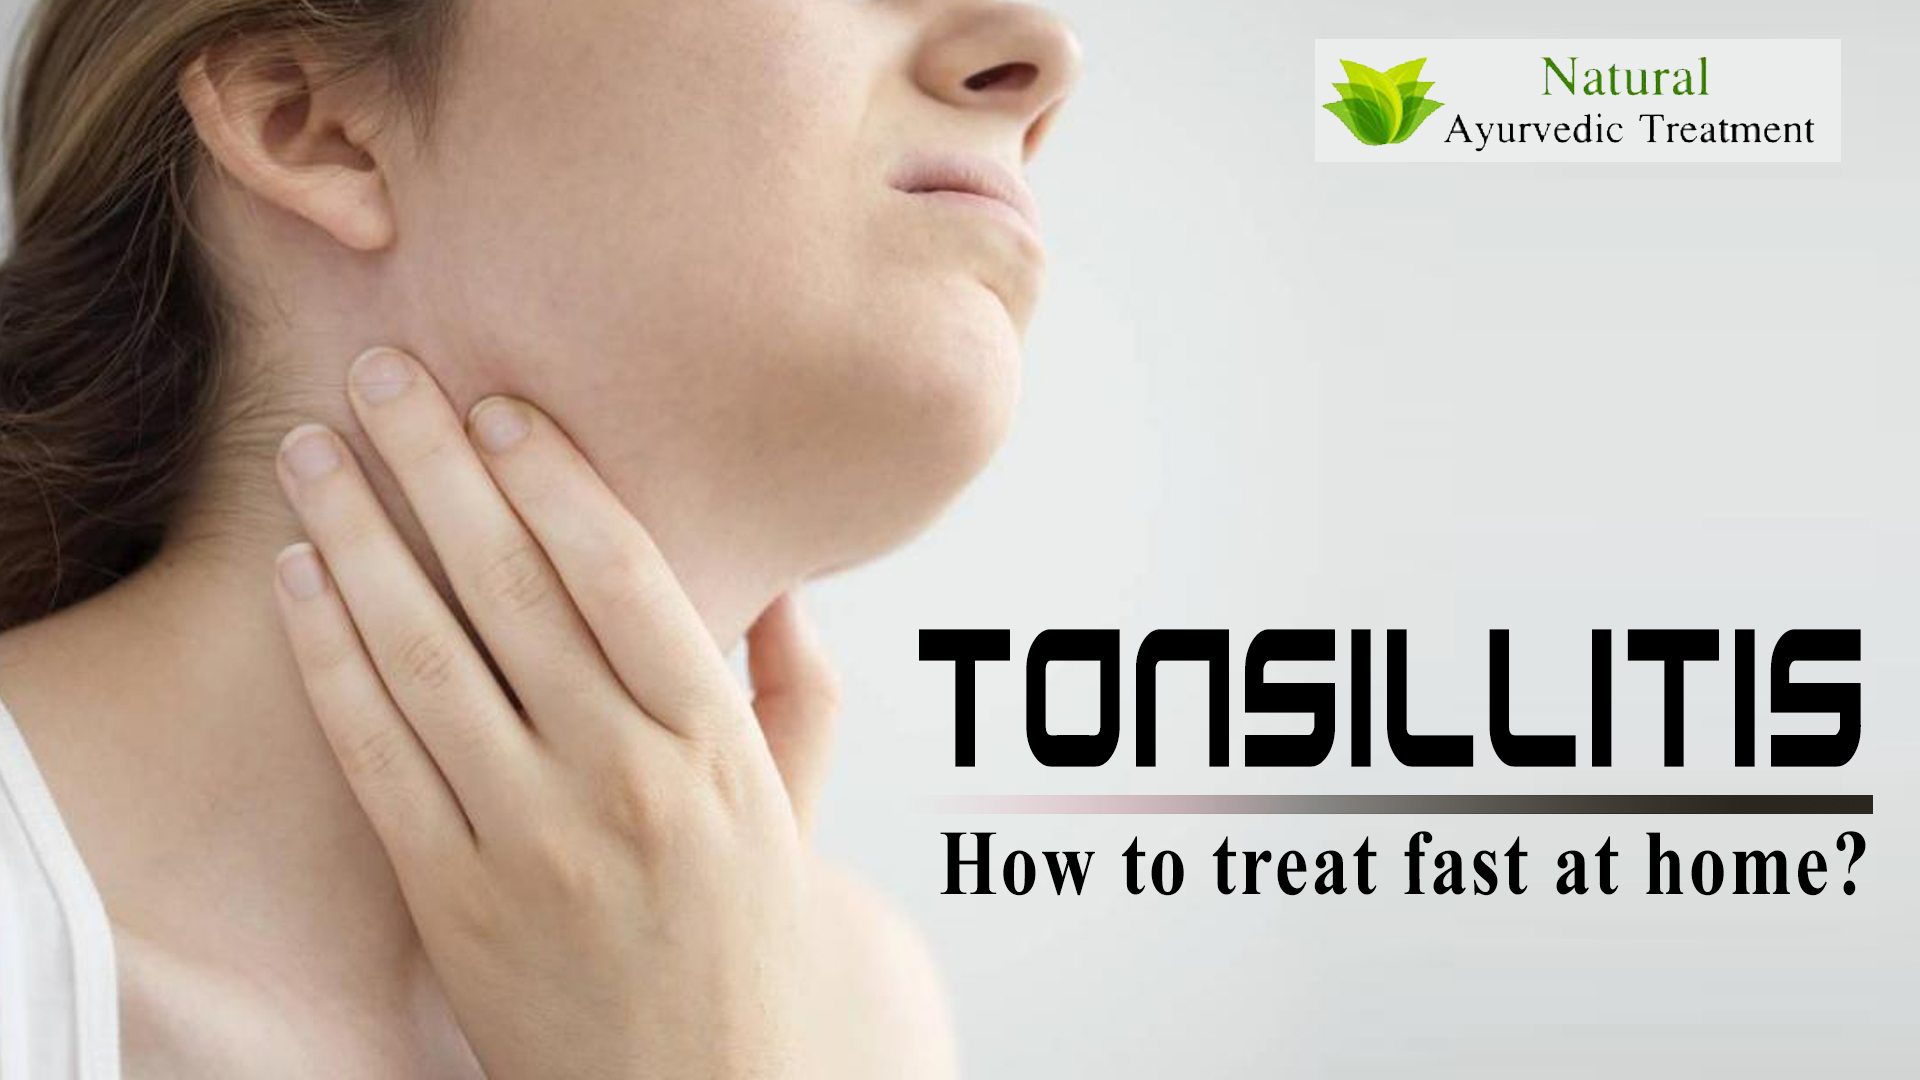 How to Treat Tonsillitis Fast at Home?